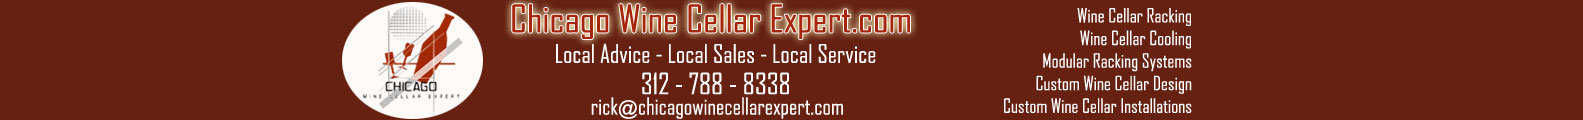 chicagowinecellarexpert.com